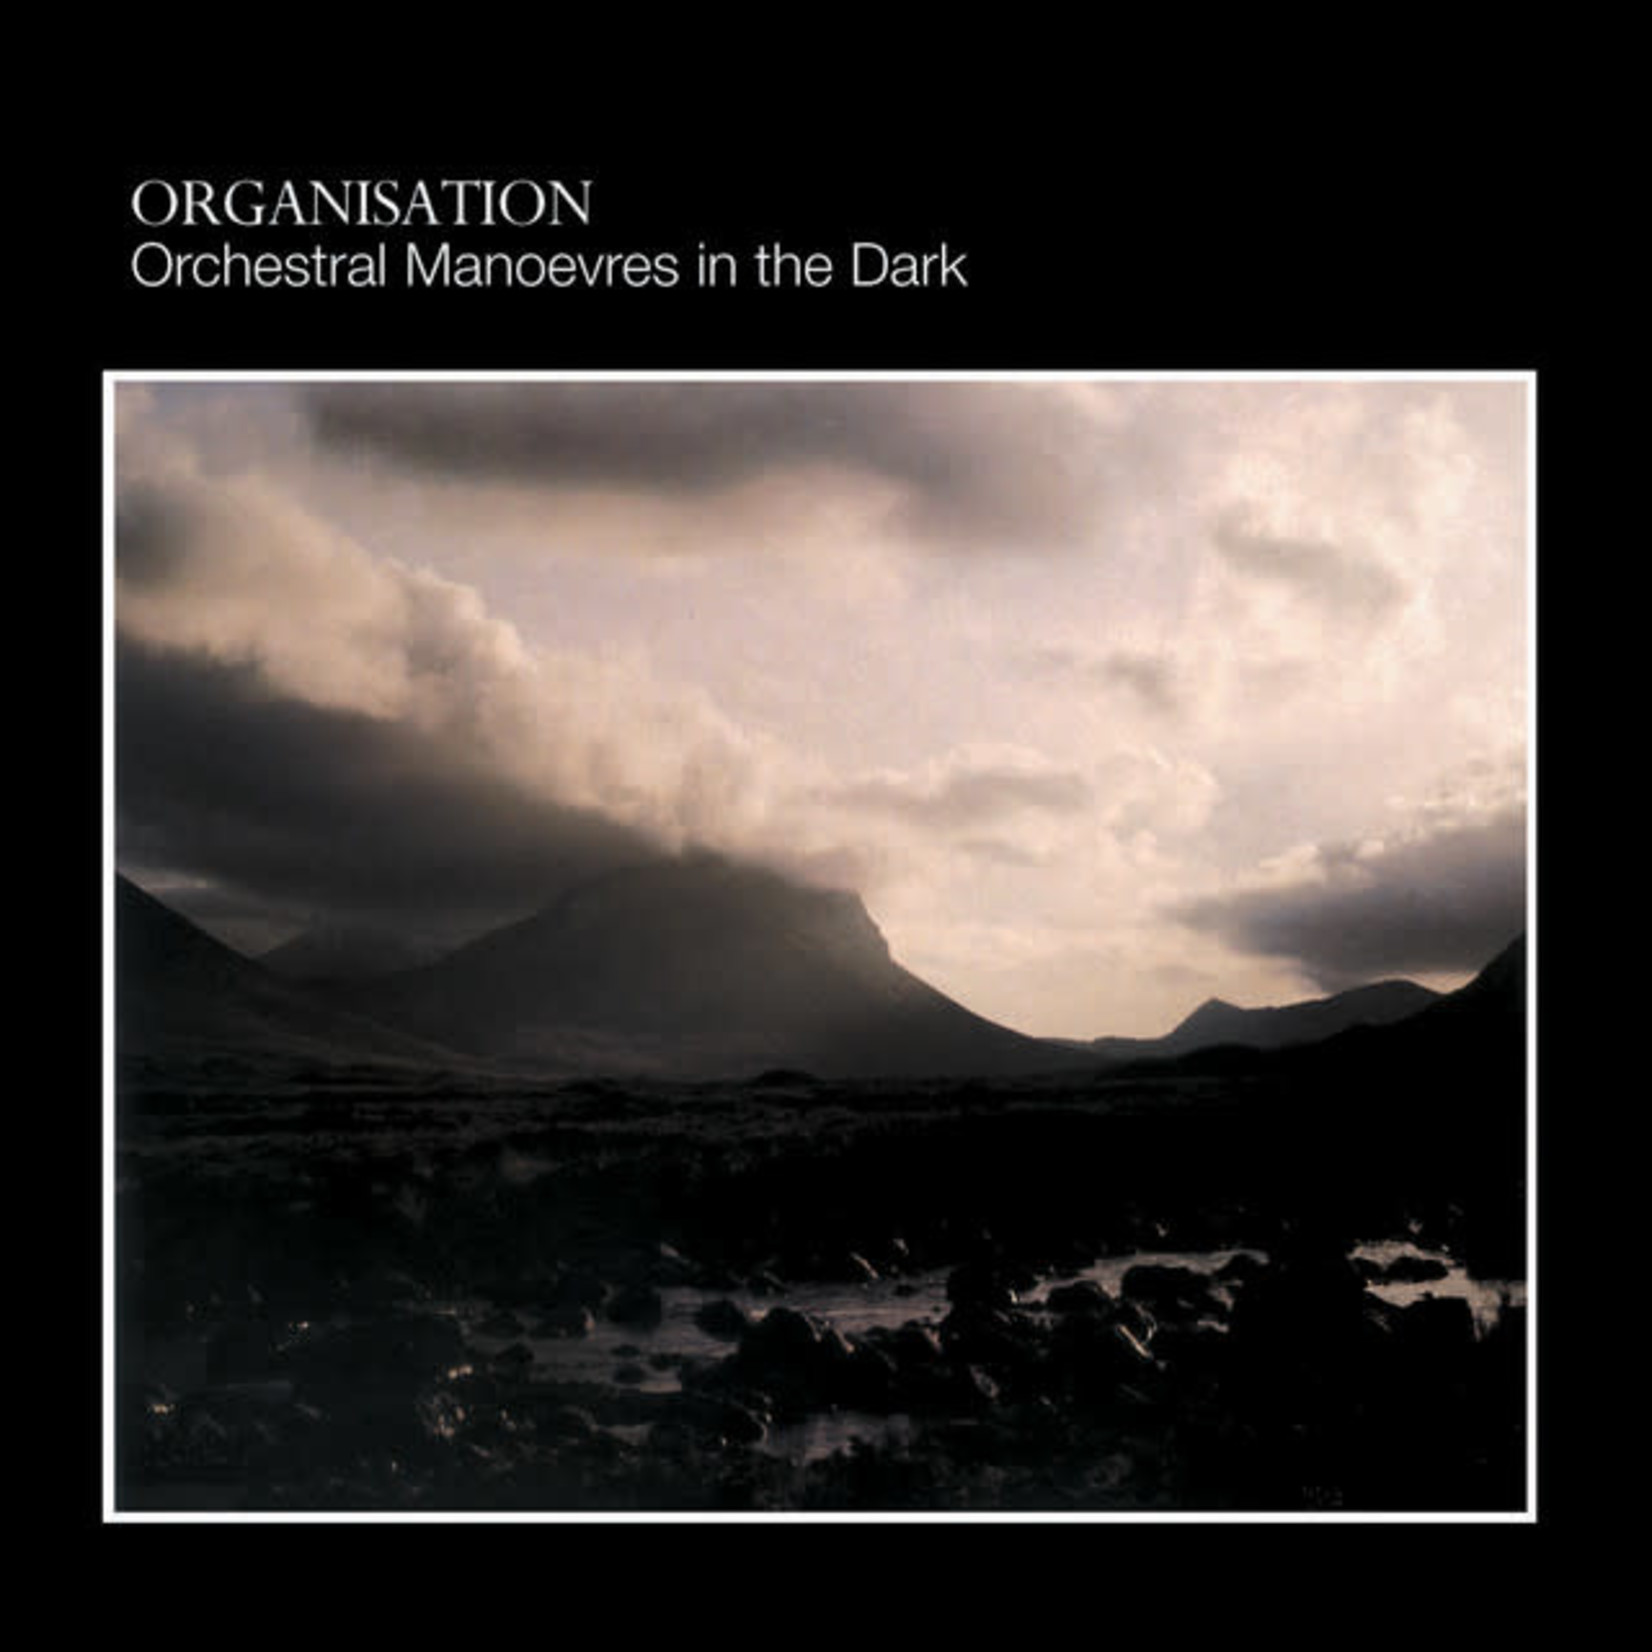 Vinyl Orchestral Manoeuvres In The Dark - Organisation